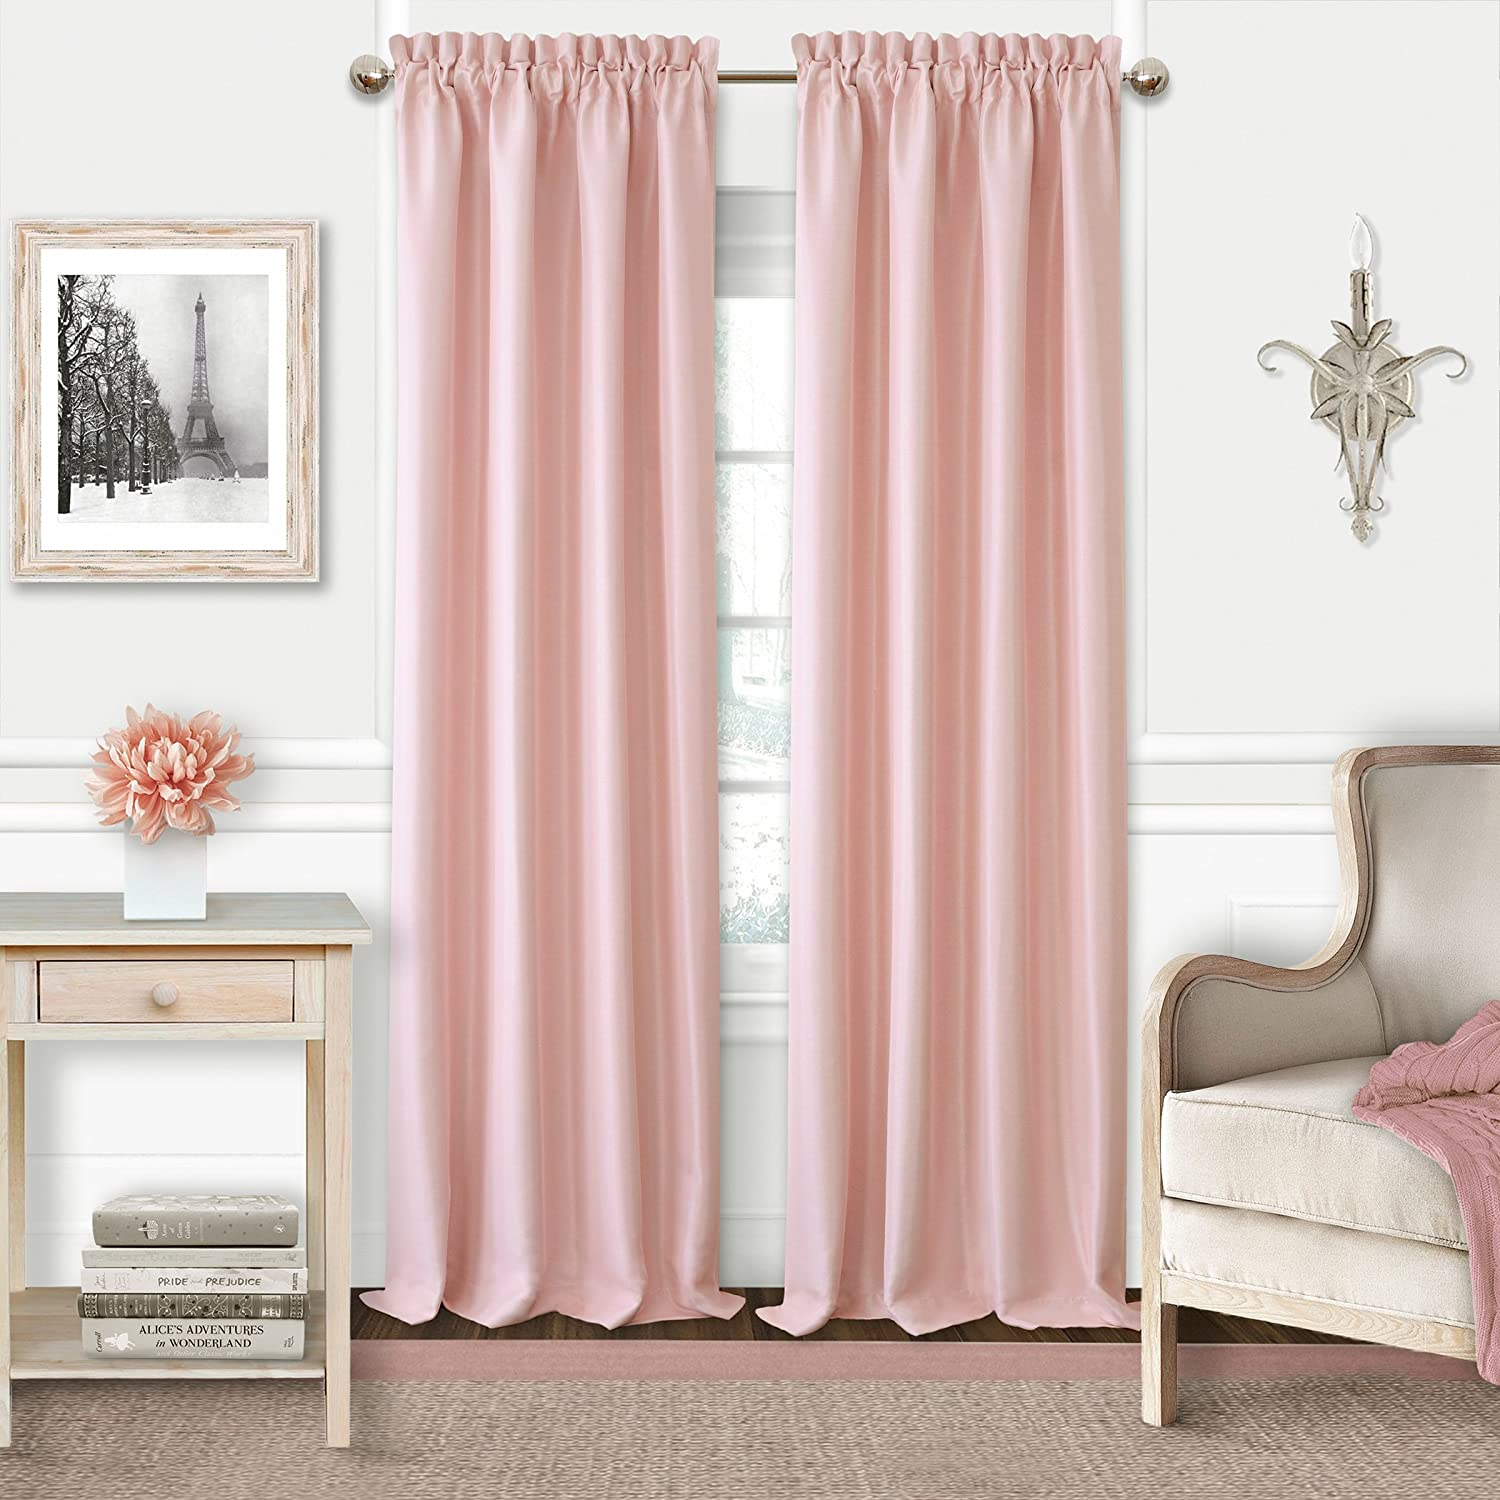 Lavender Elrene Adaline Kids Pastel Faux Silk Solid Color Blackout Room Darkening Thermal Insulating Window Curtain//Single Rod Pocket Panel by 52 Inch Wide X 84 Inch Long